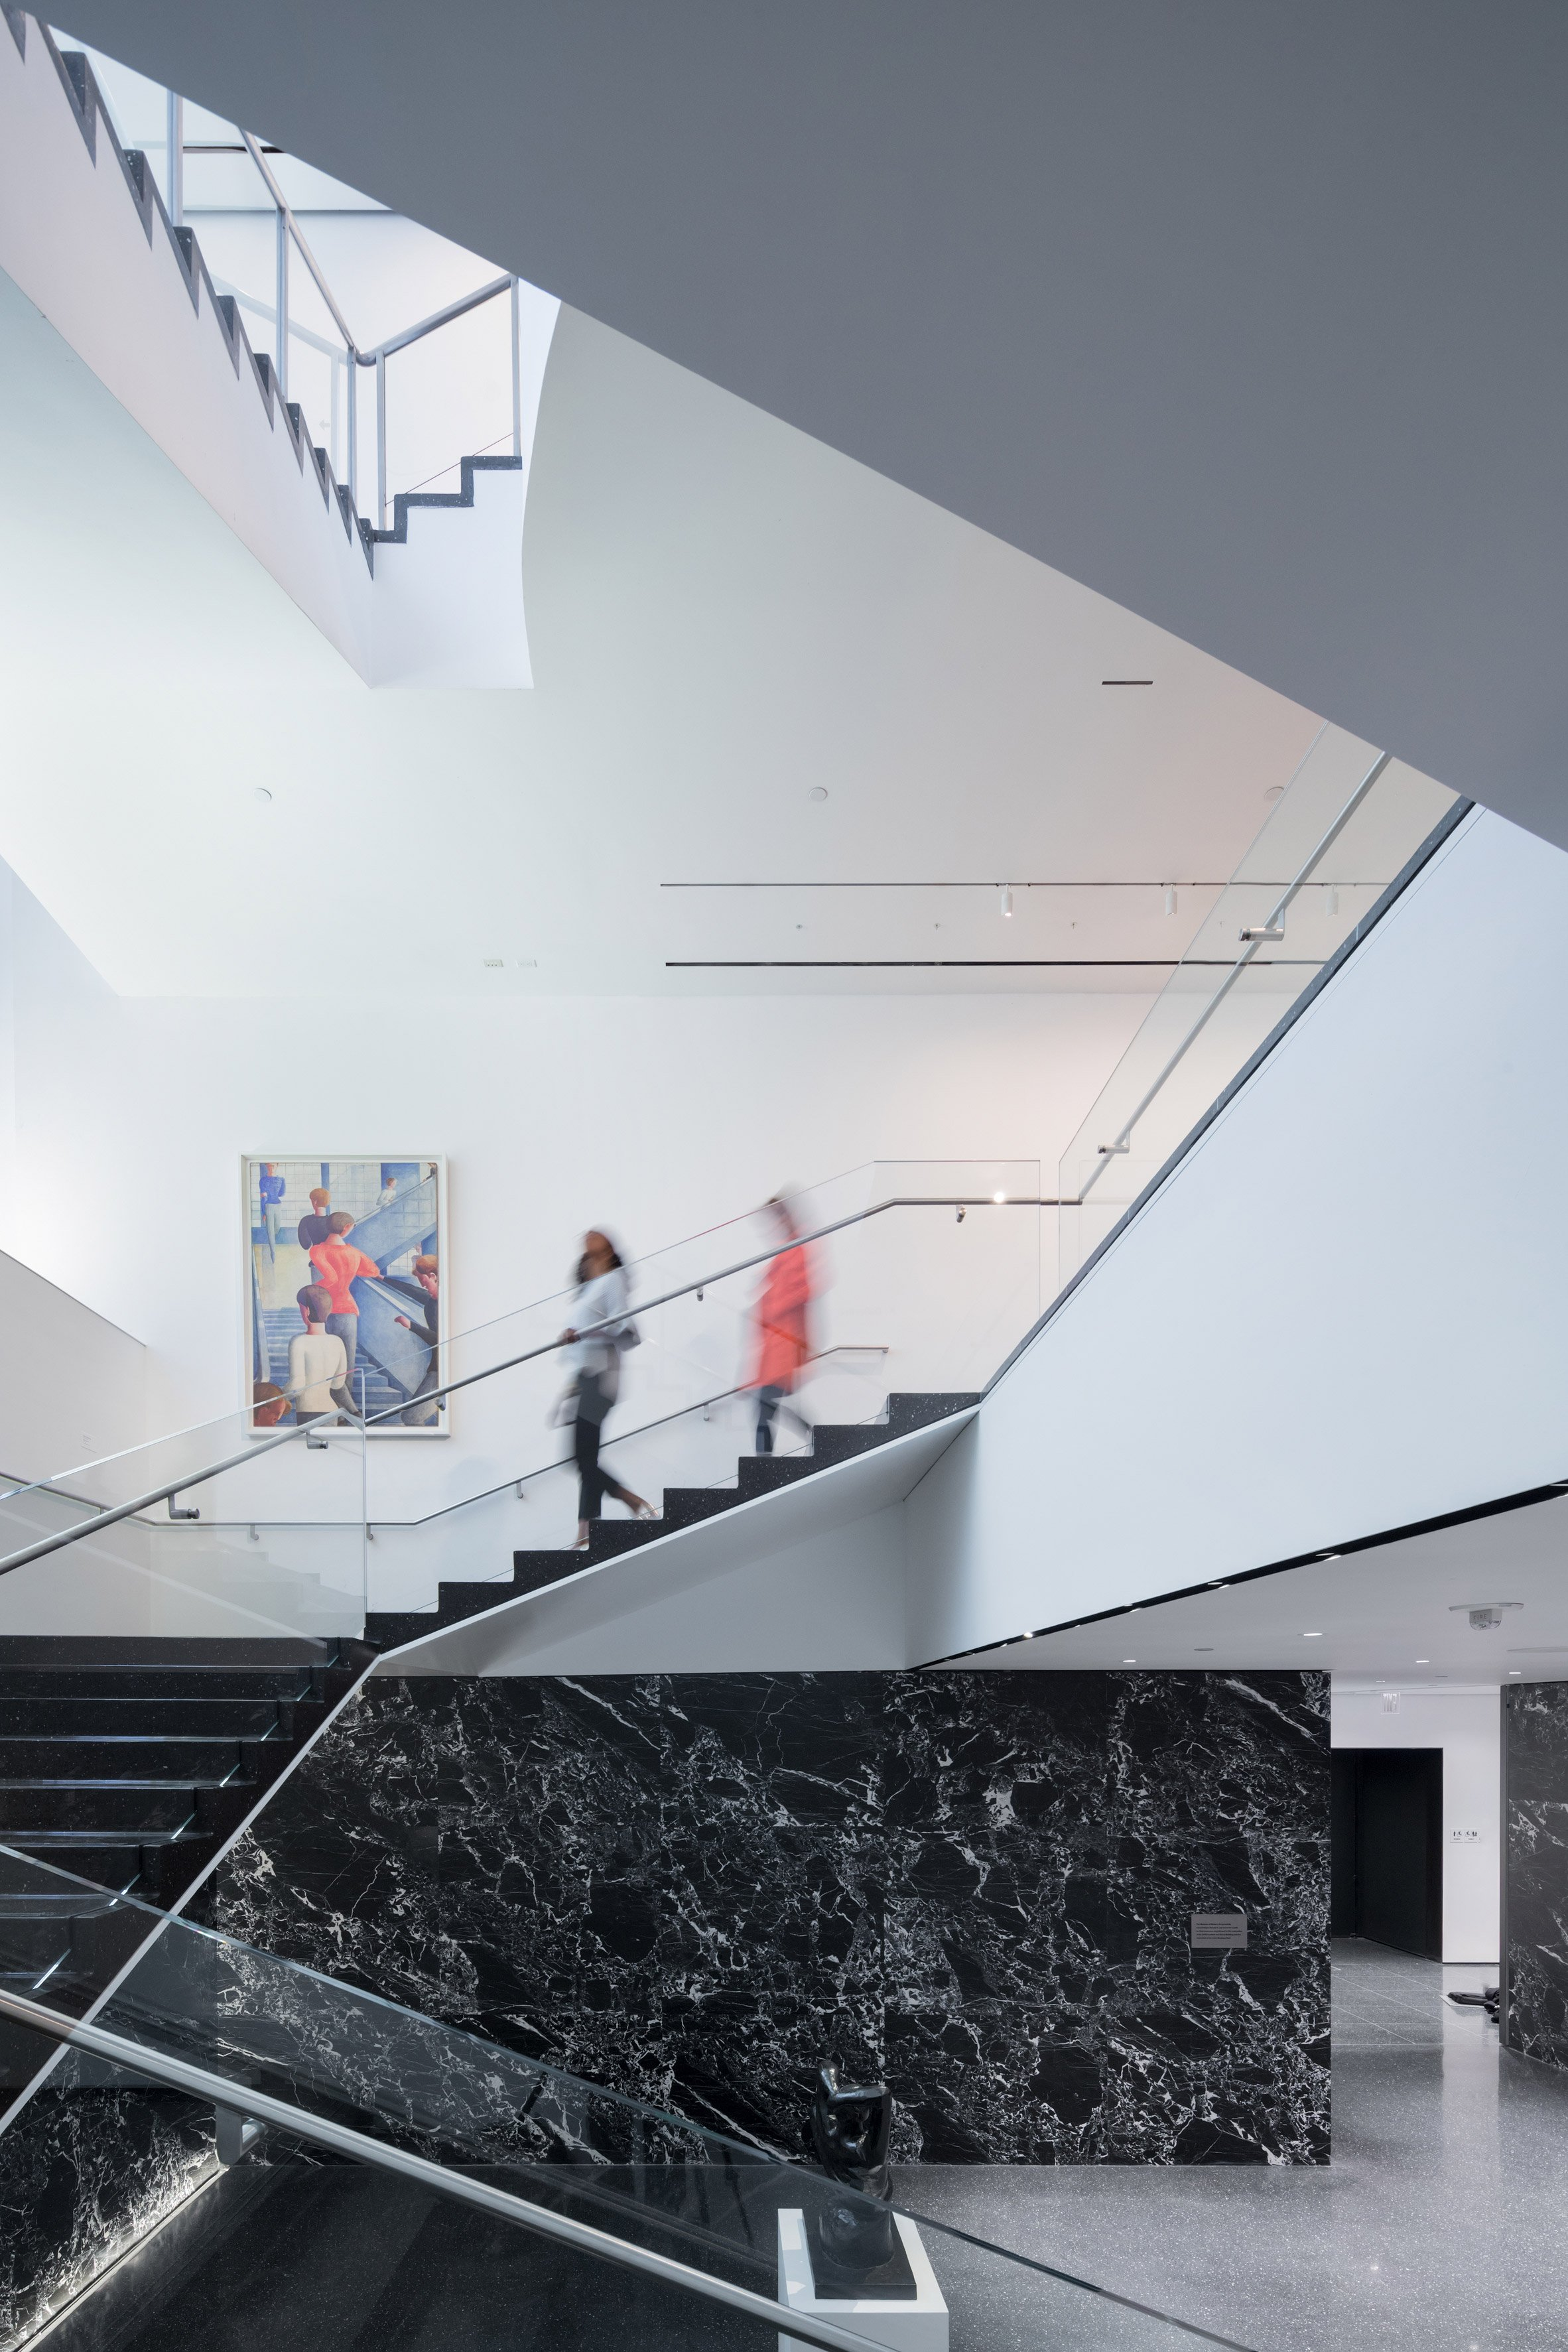 MoMA unveils first phase of major overhaul by Diller Scofidio + Renfro